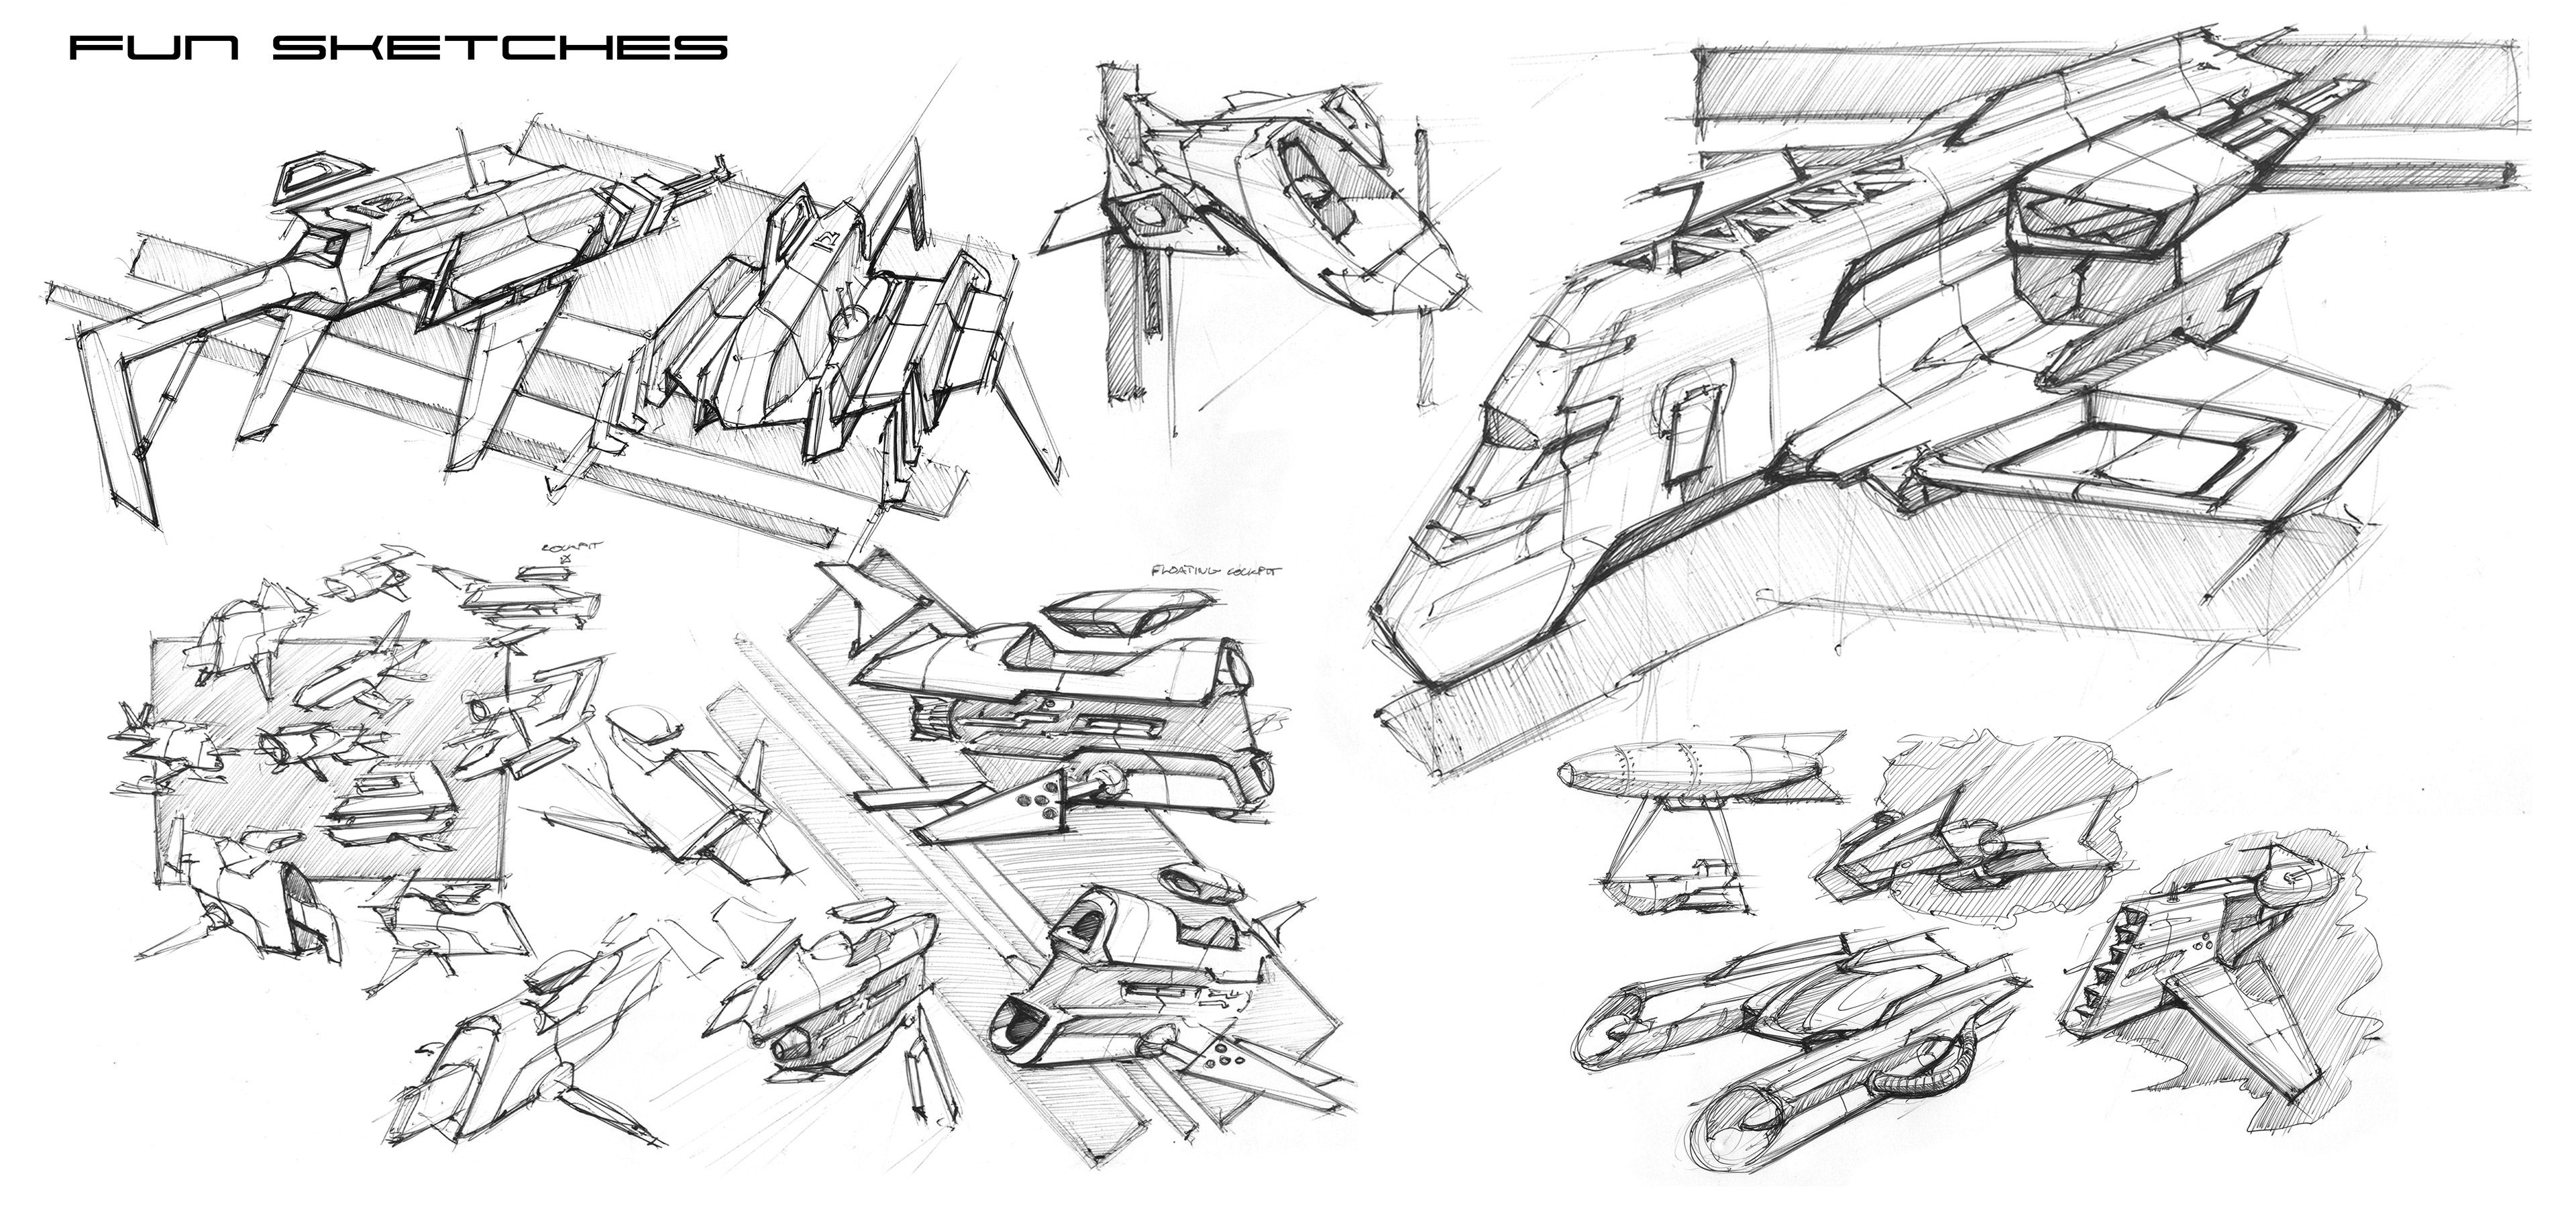 This is a collection of some of my free-time sketching.